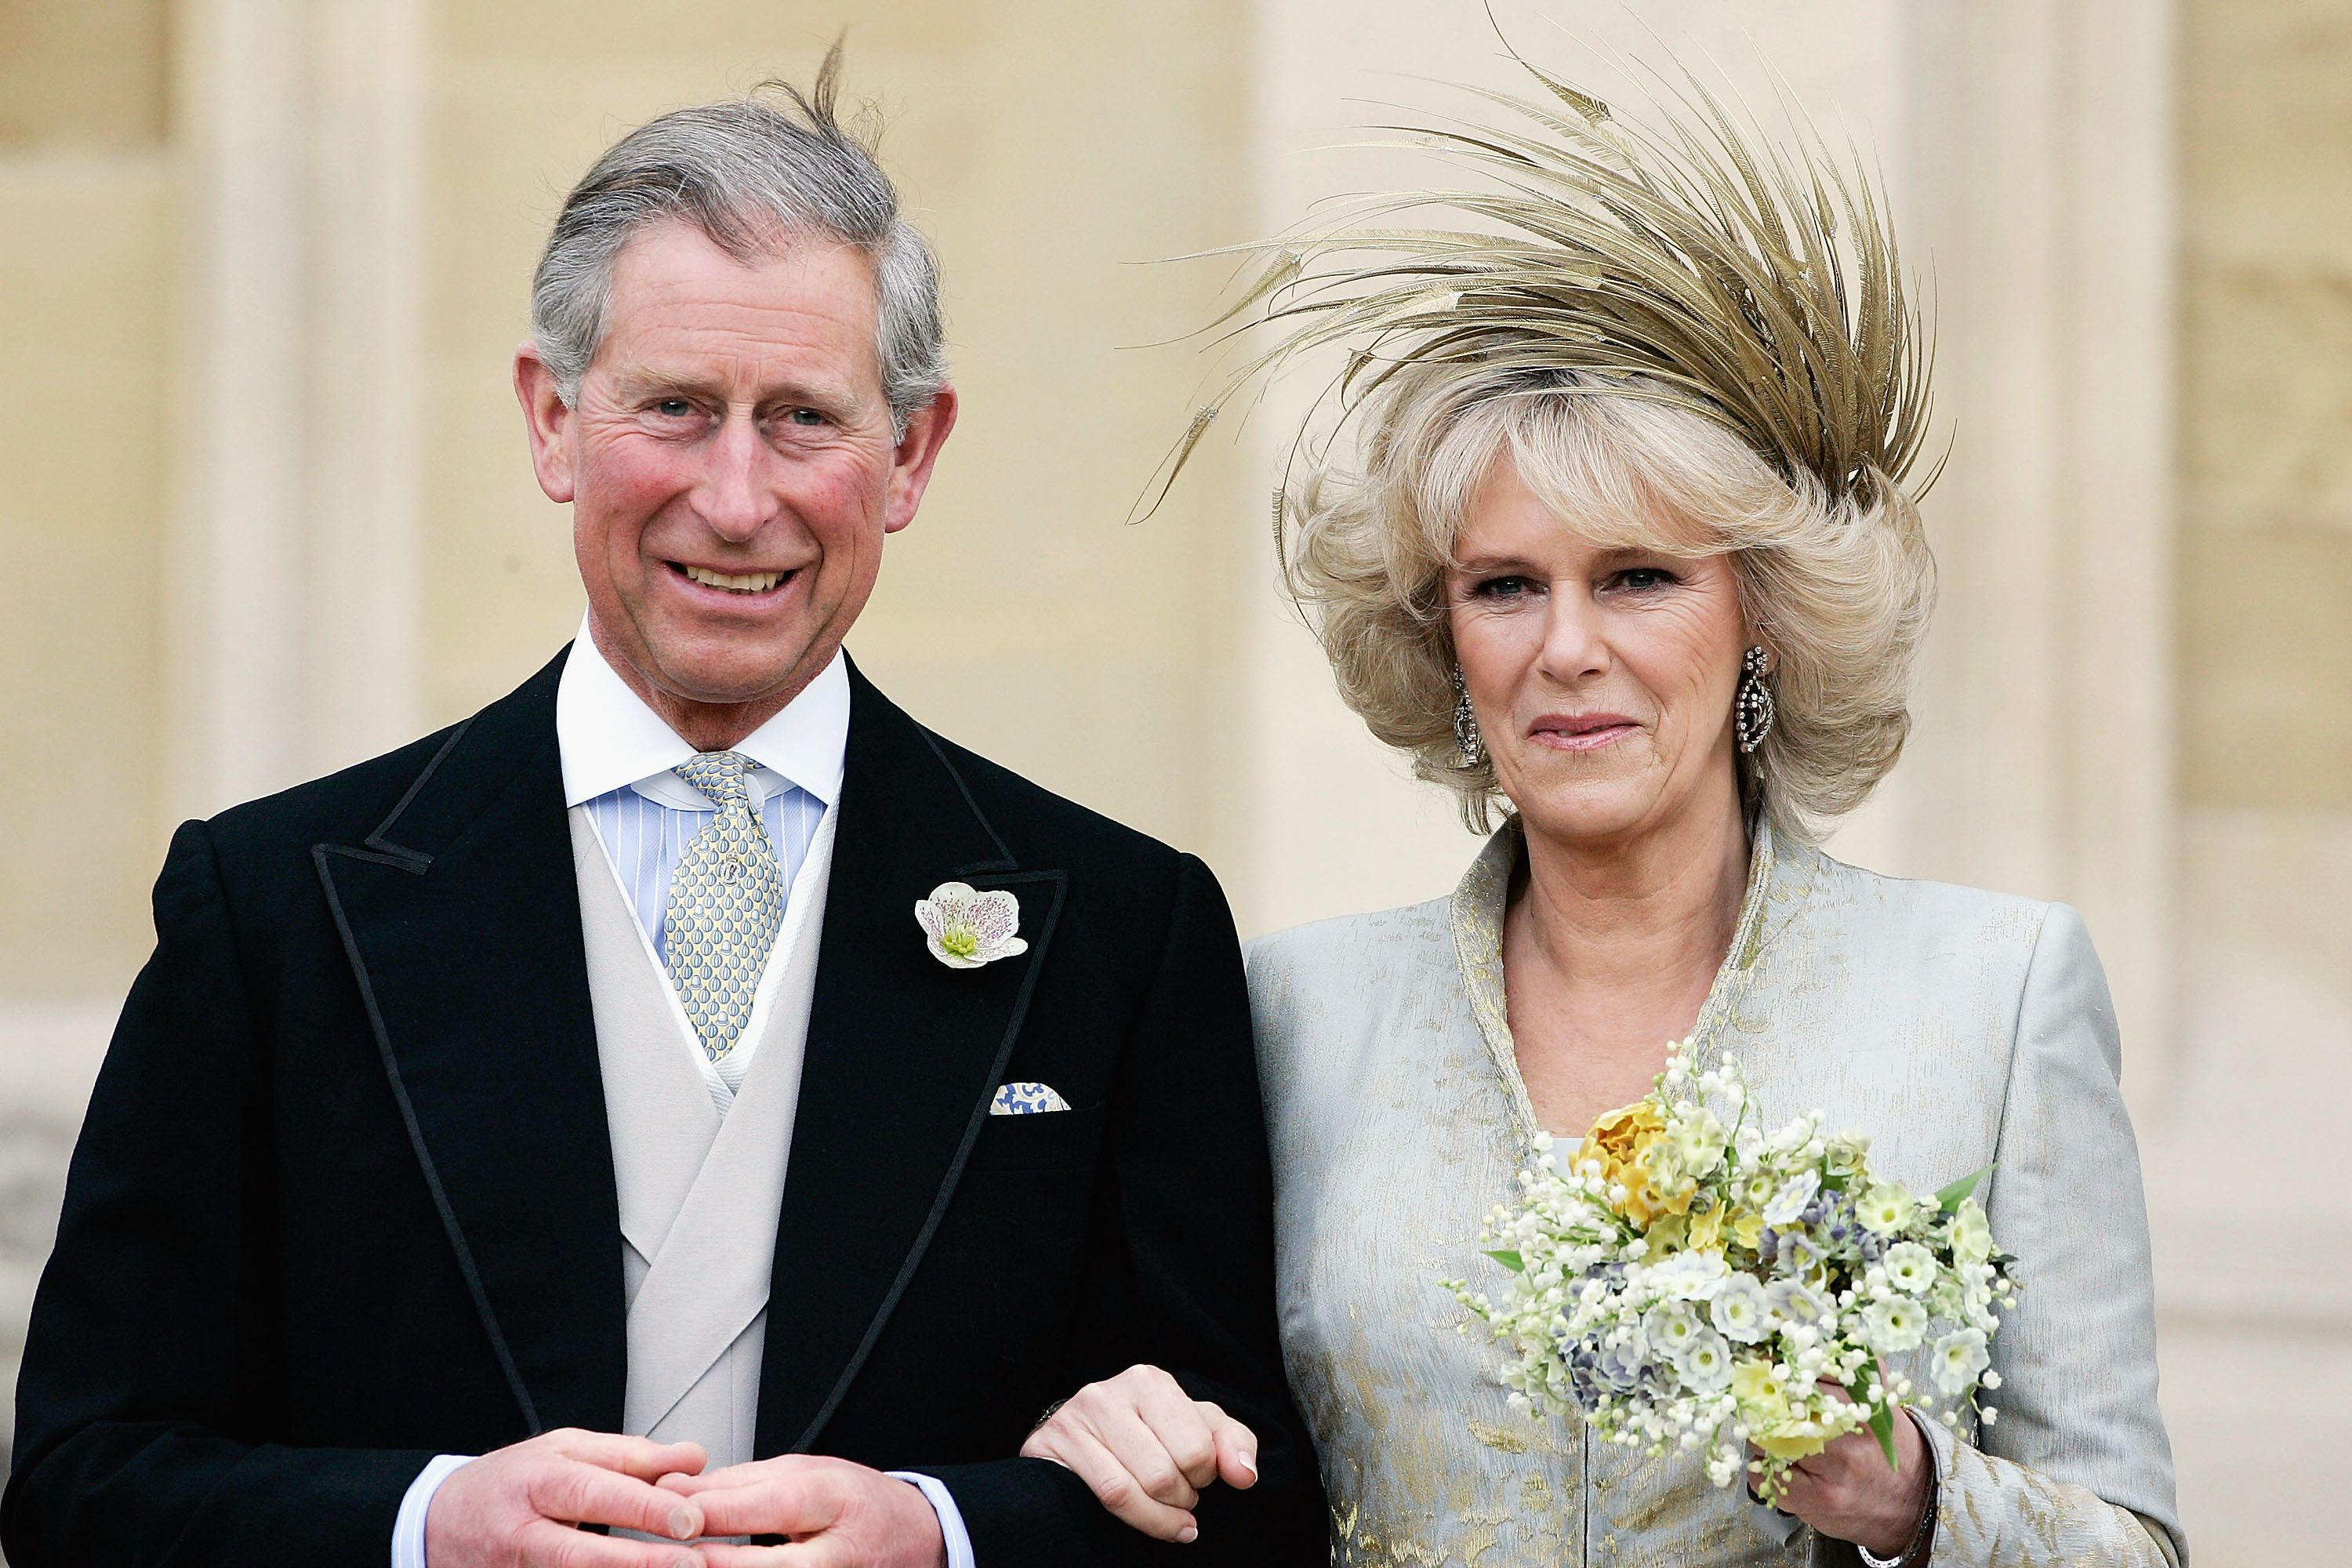 Prince Charles and Camilla Parker-Bowles' Complete Relationship Timeline